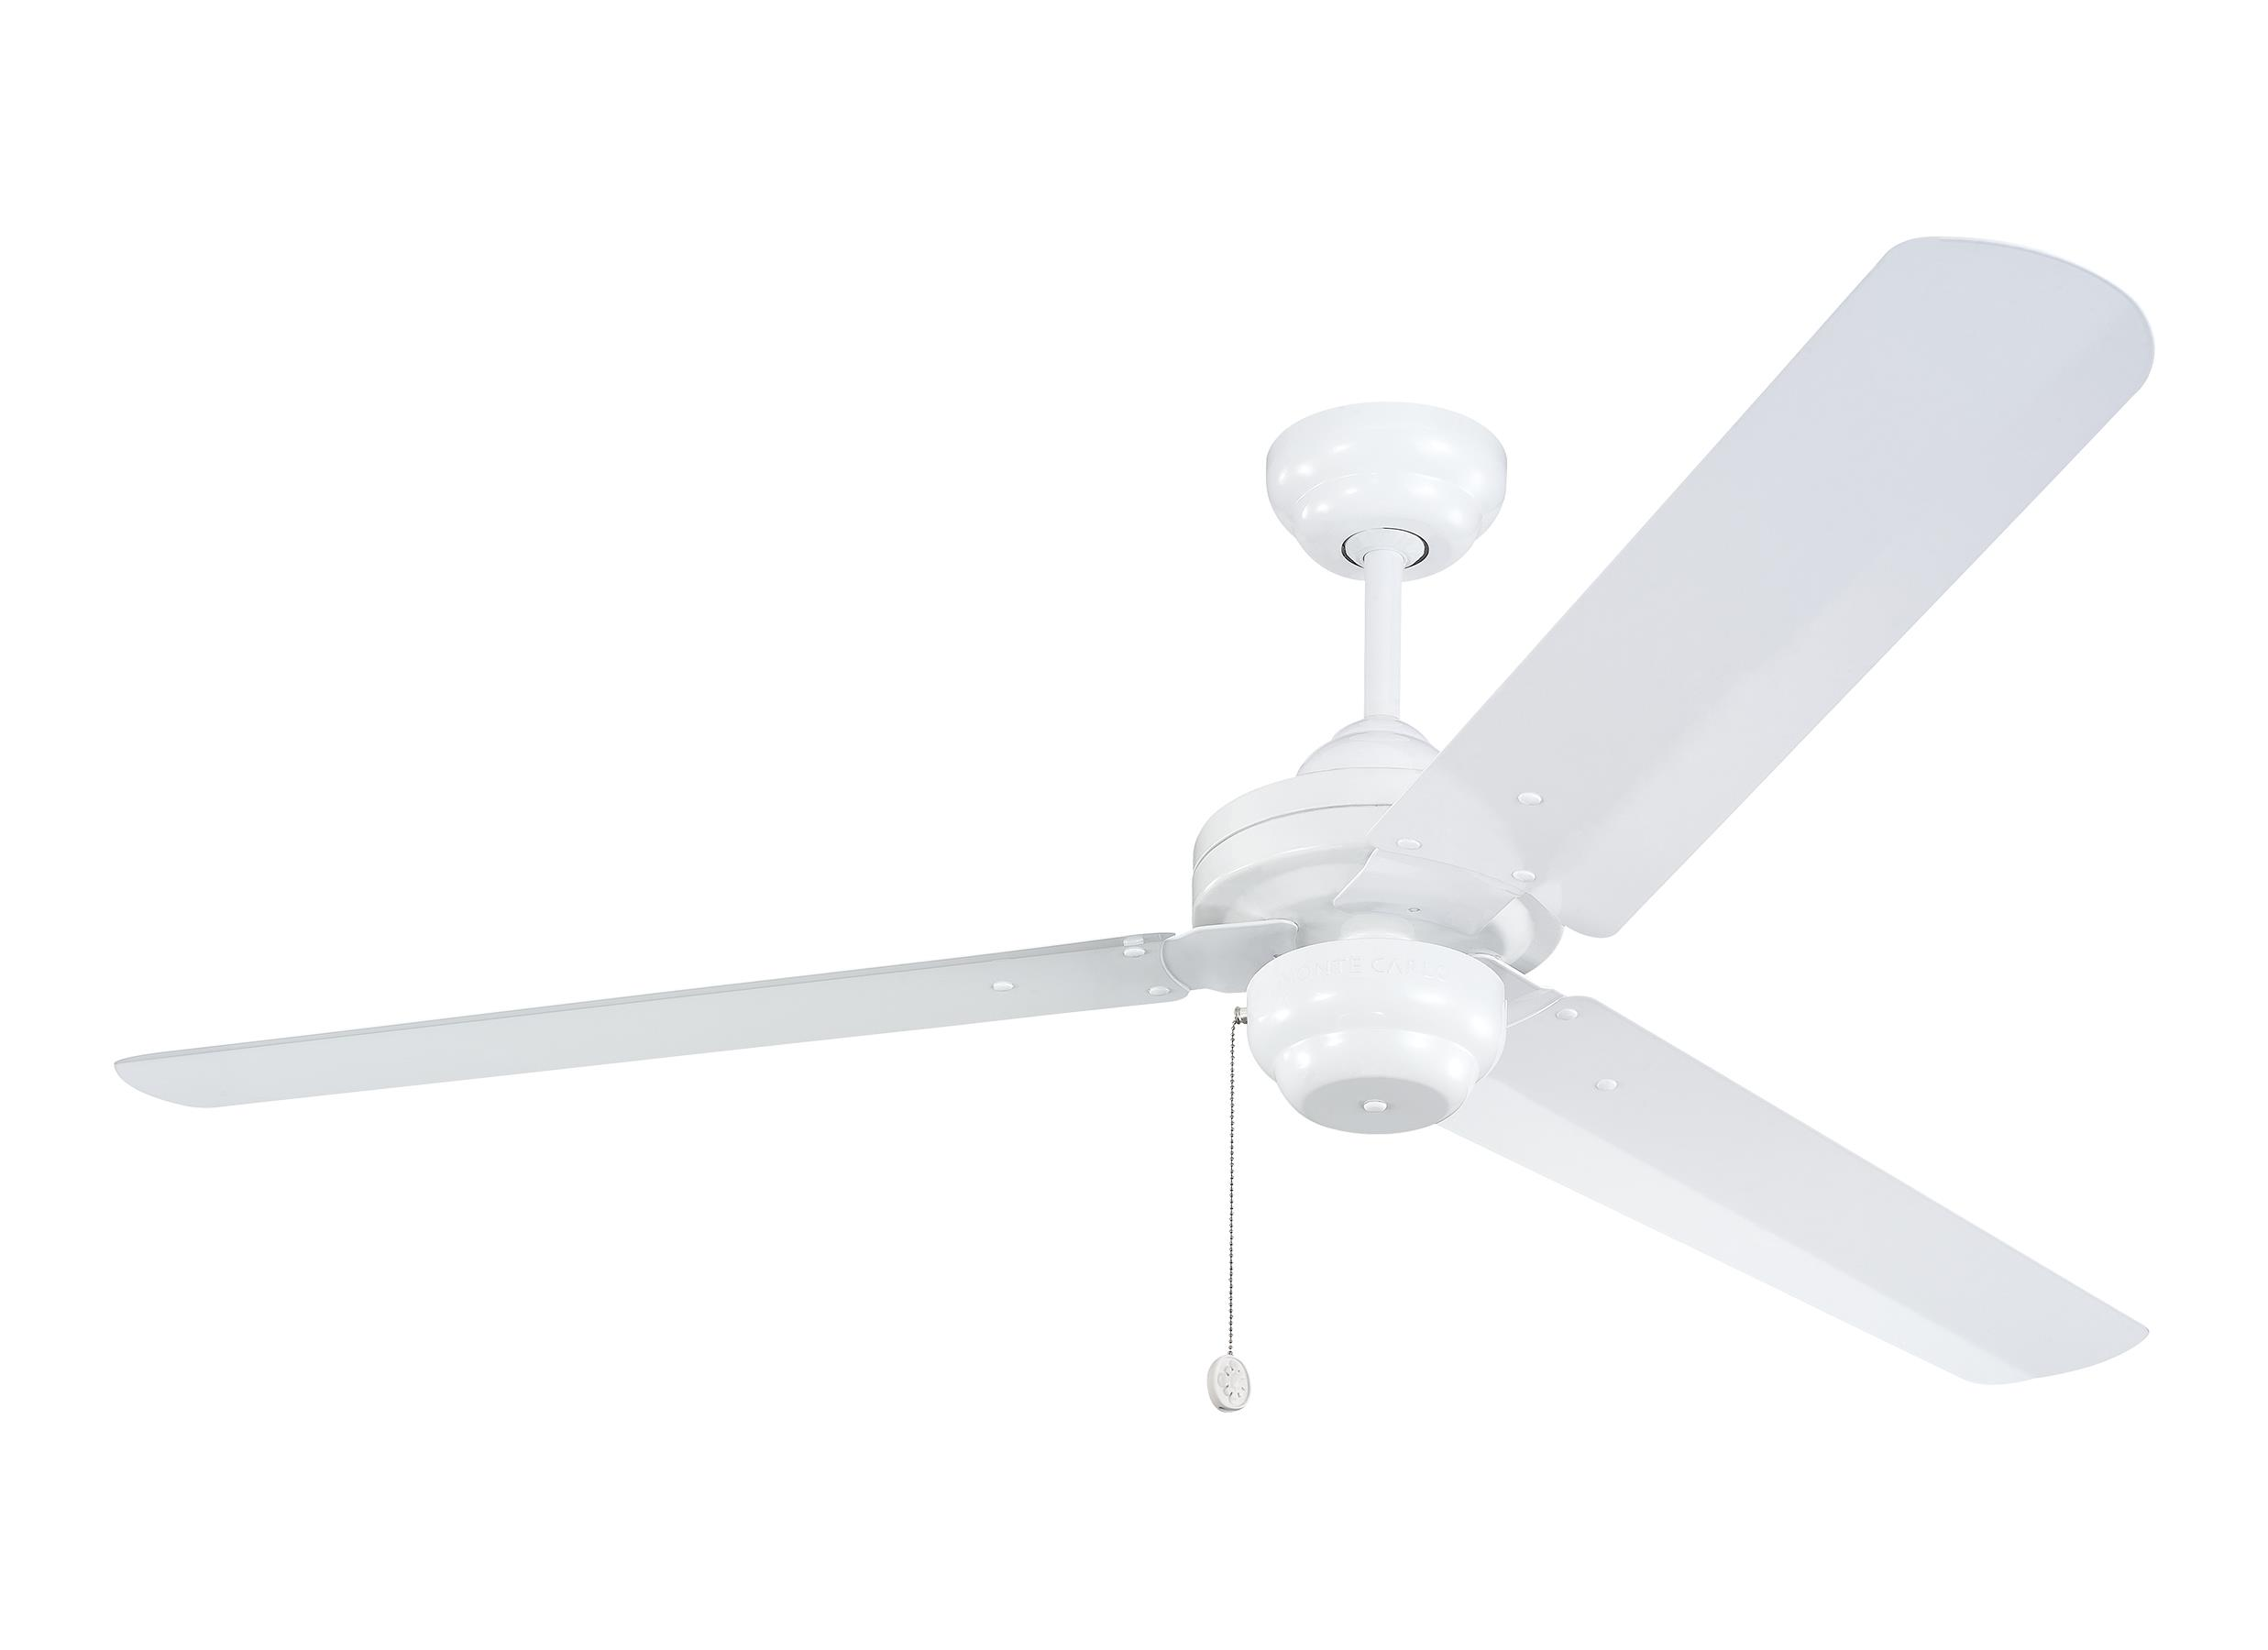 fan ceiling design models hugger top ideas low plus and emerson of profile snugger inspiring flat fans decor